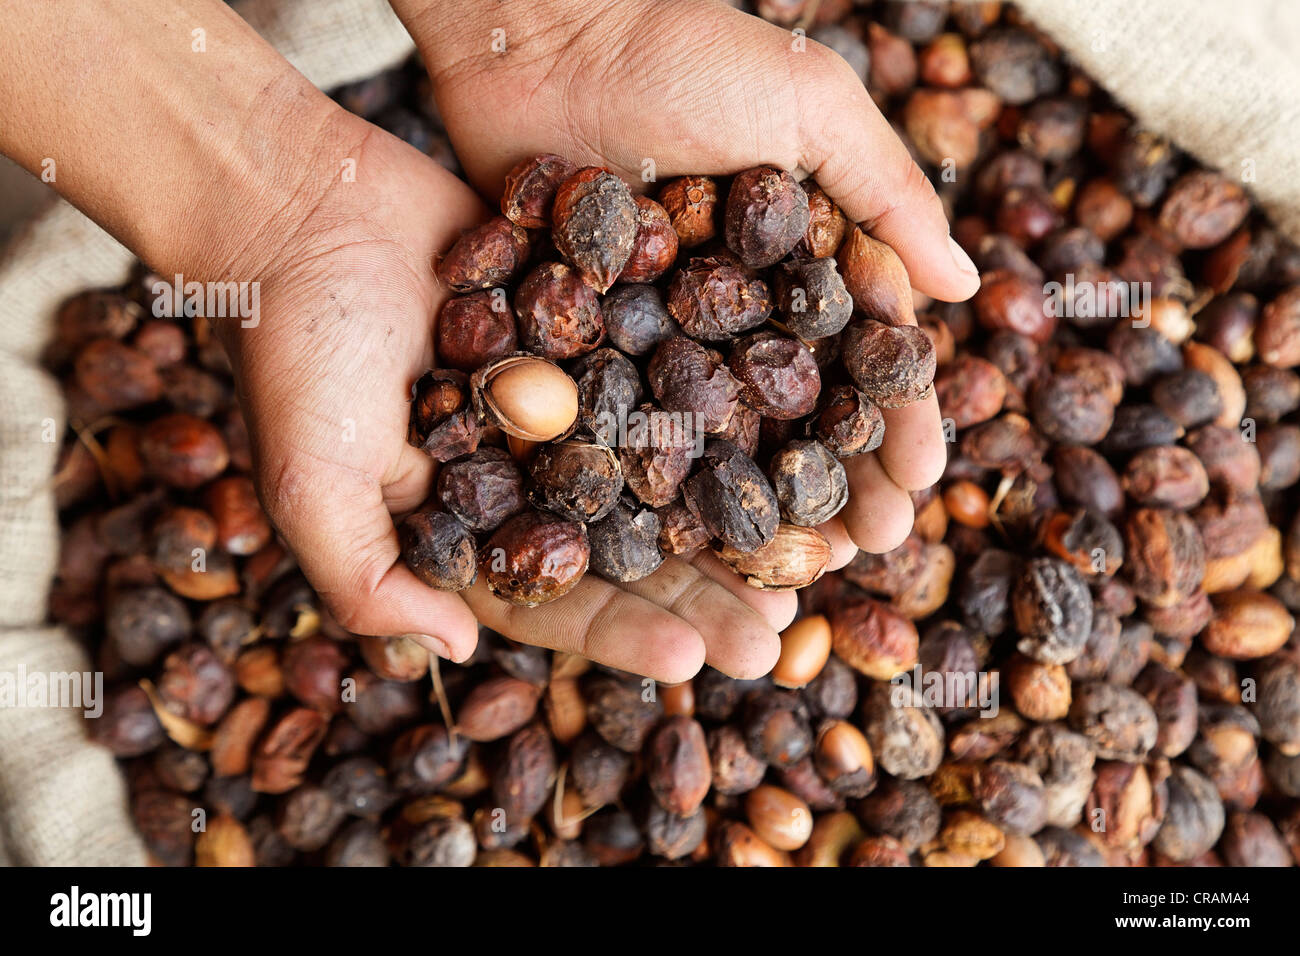 An argan oil producer controlling with his hands the delivered Argan (Argania spinosa) nuts, near Essaouira, Morocco, - Stock Image